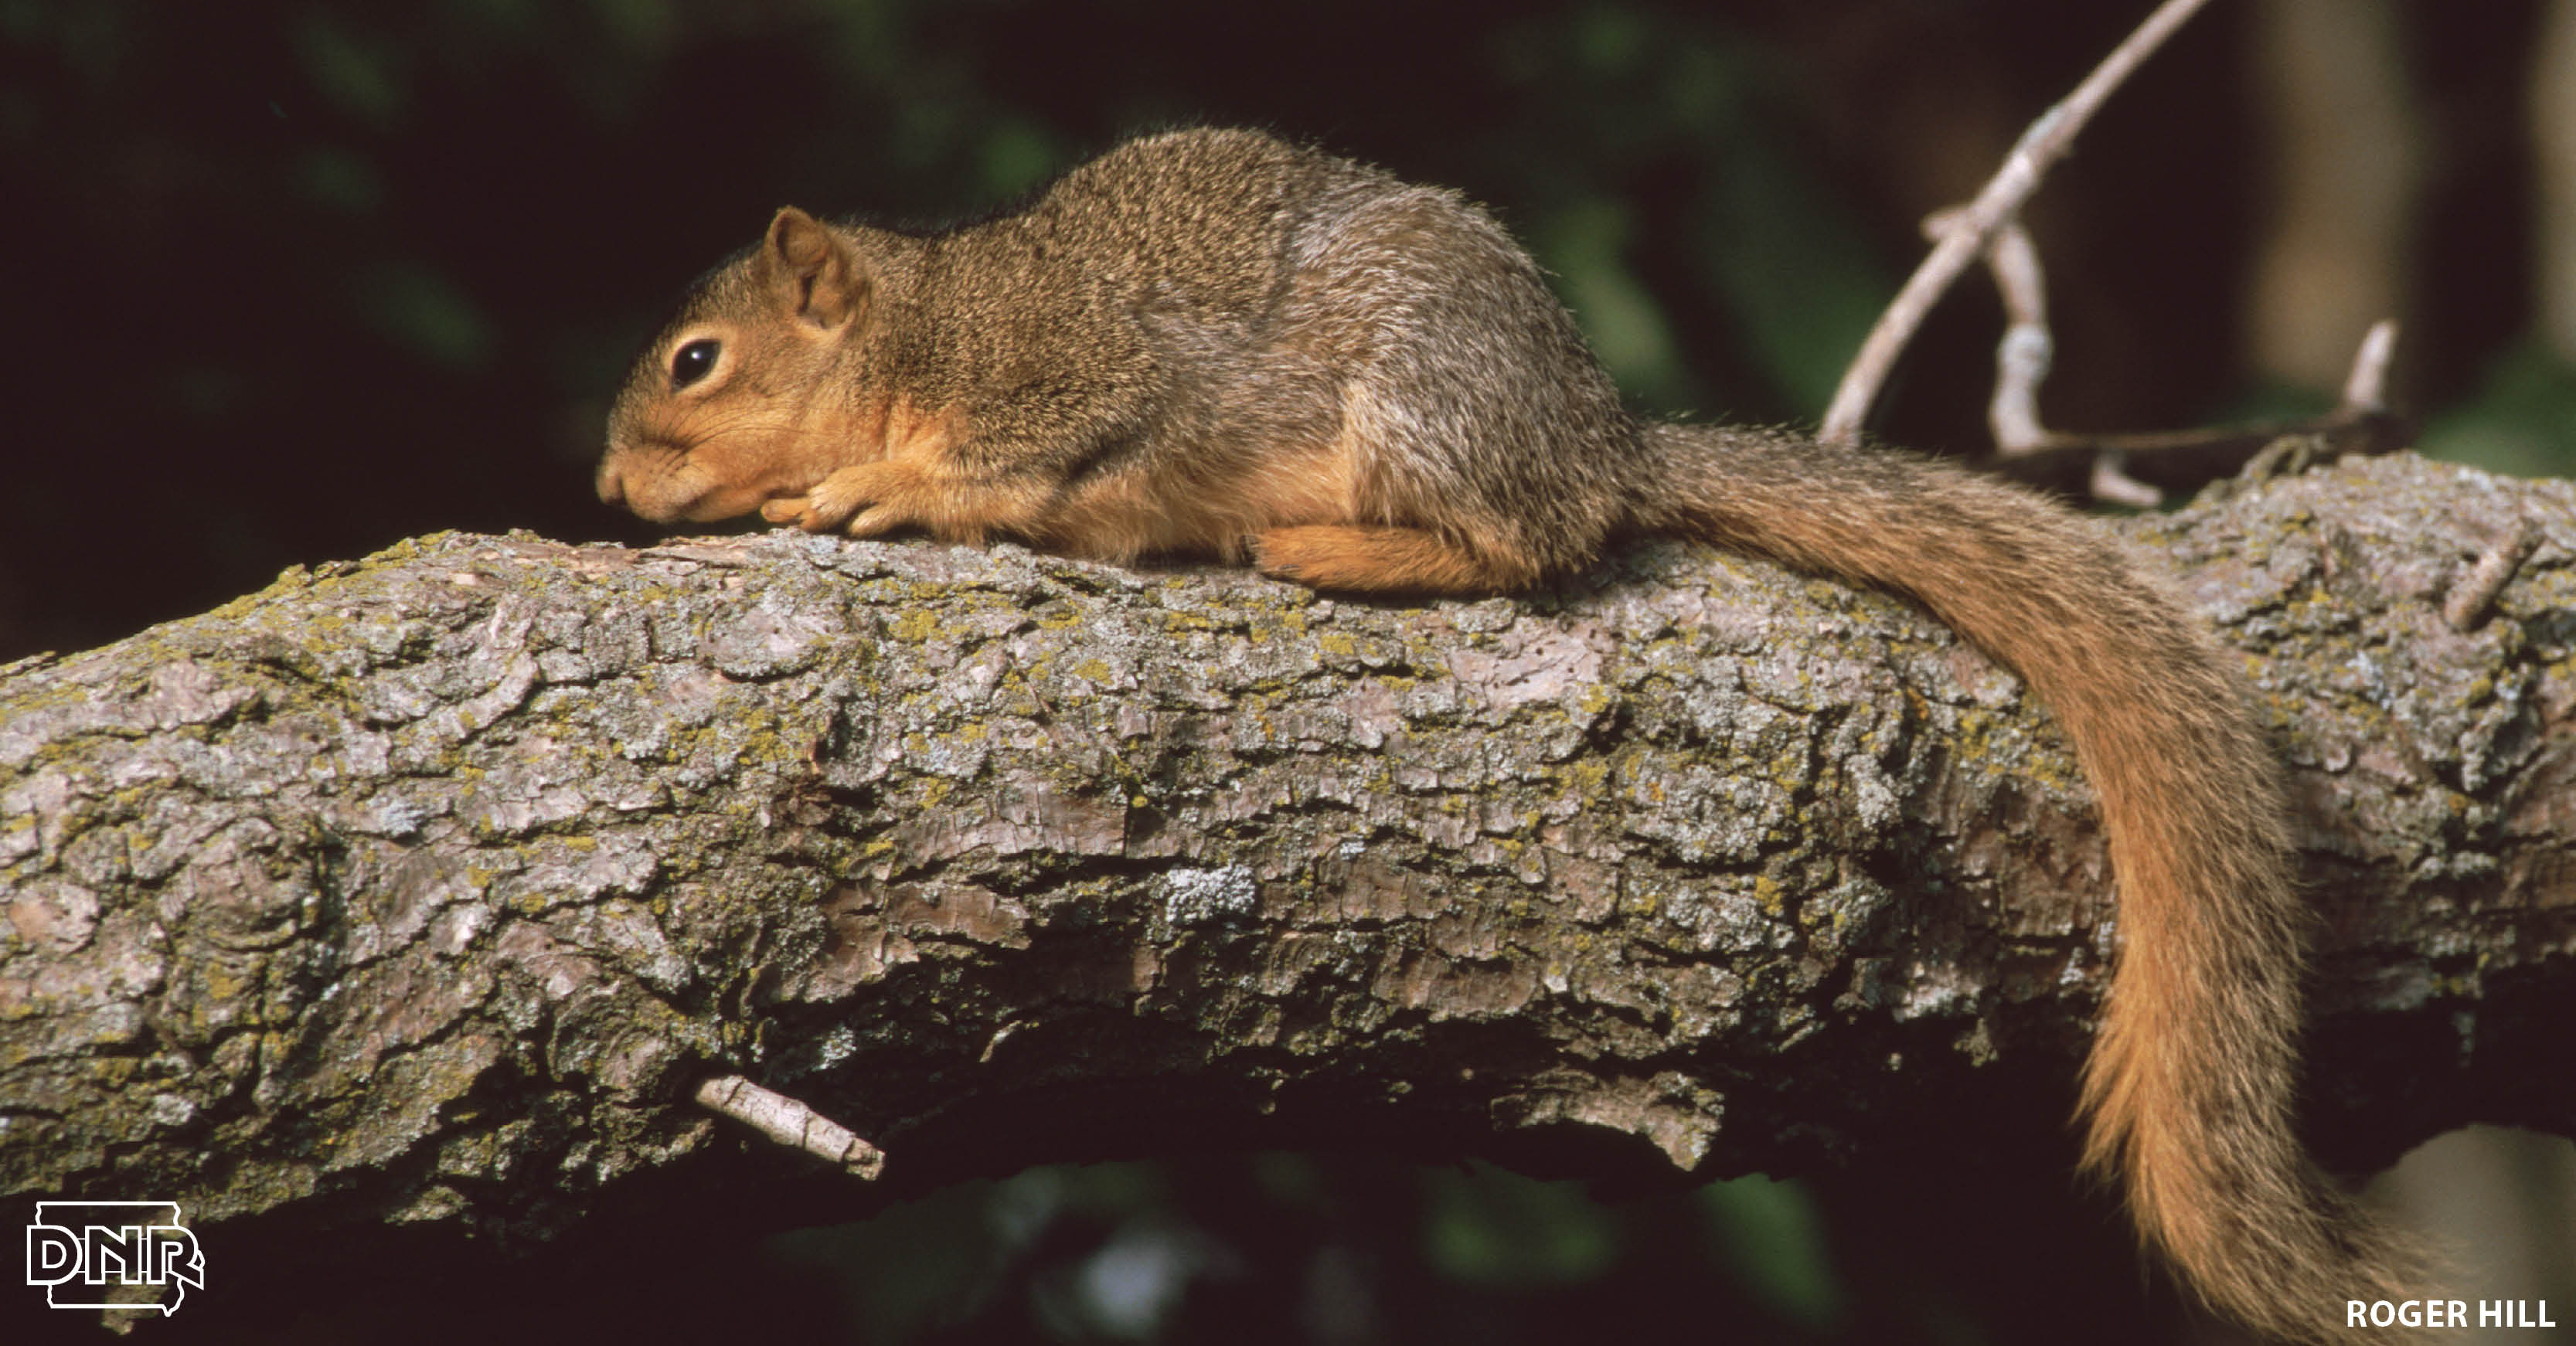 7 cool things you should know about squirrels | Iowa DNR